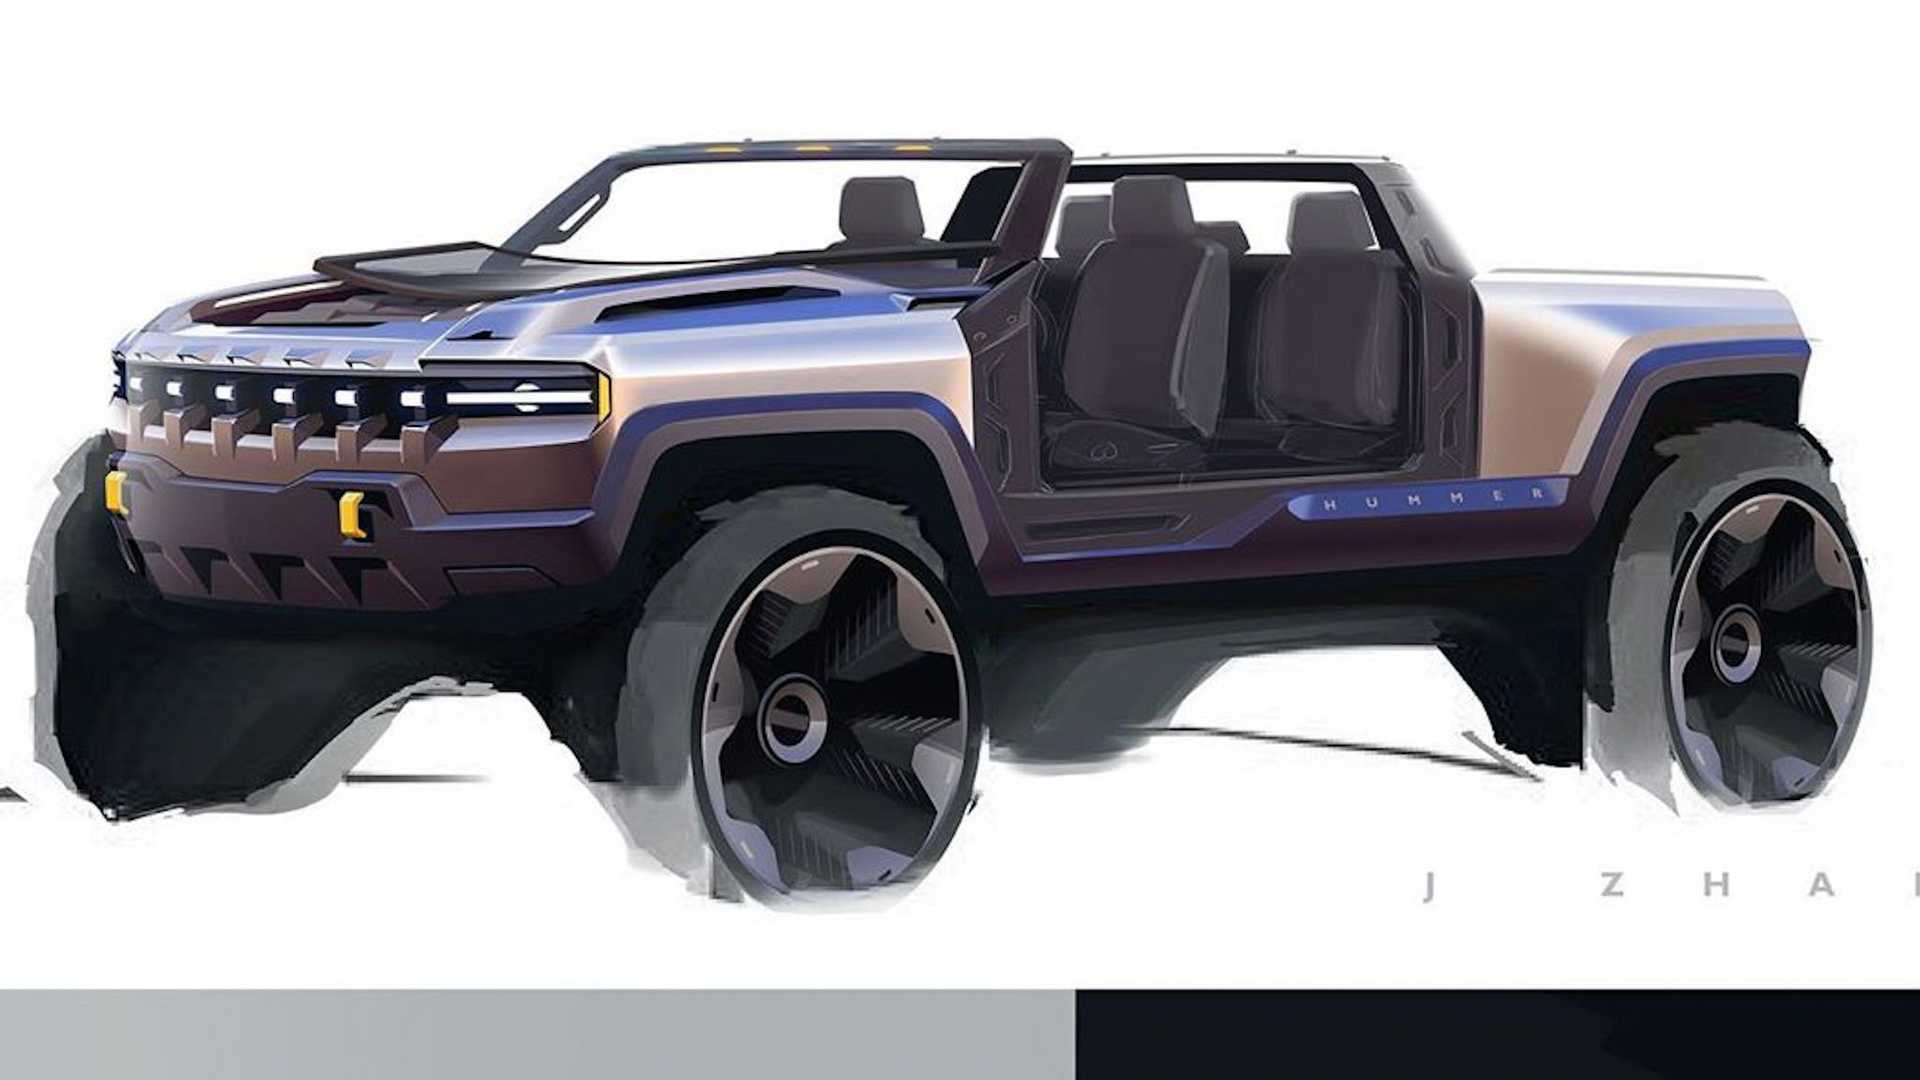 2022-gmc-hummer-ev-sketches-4